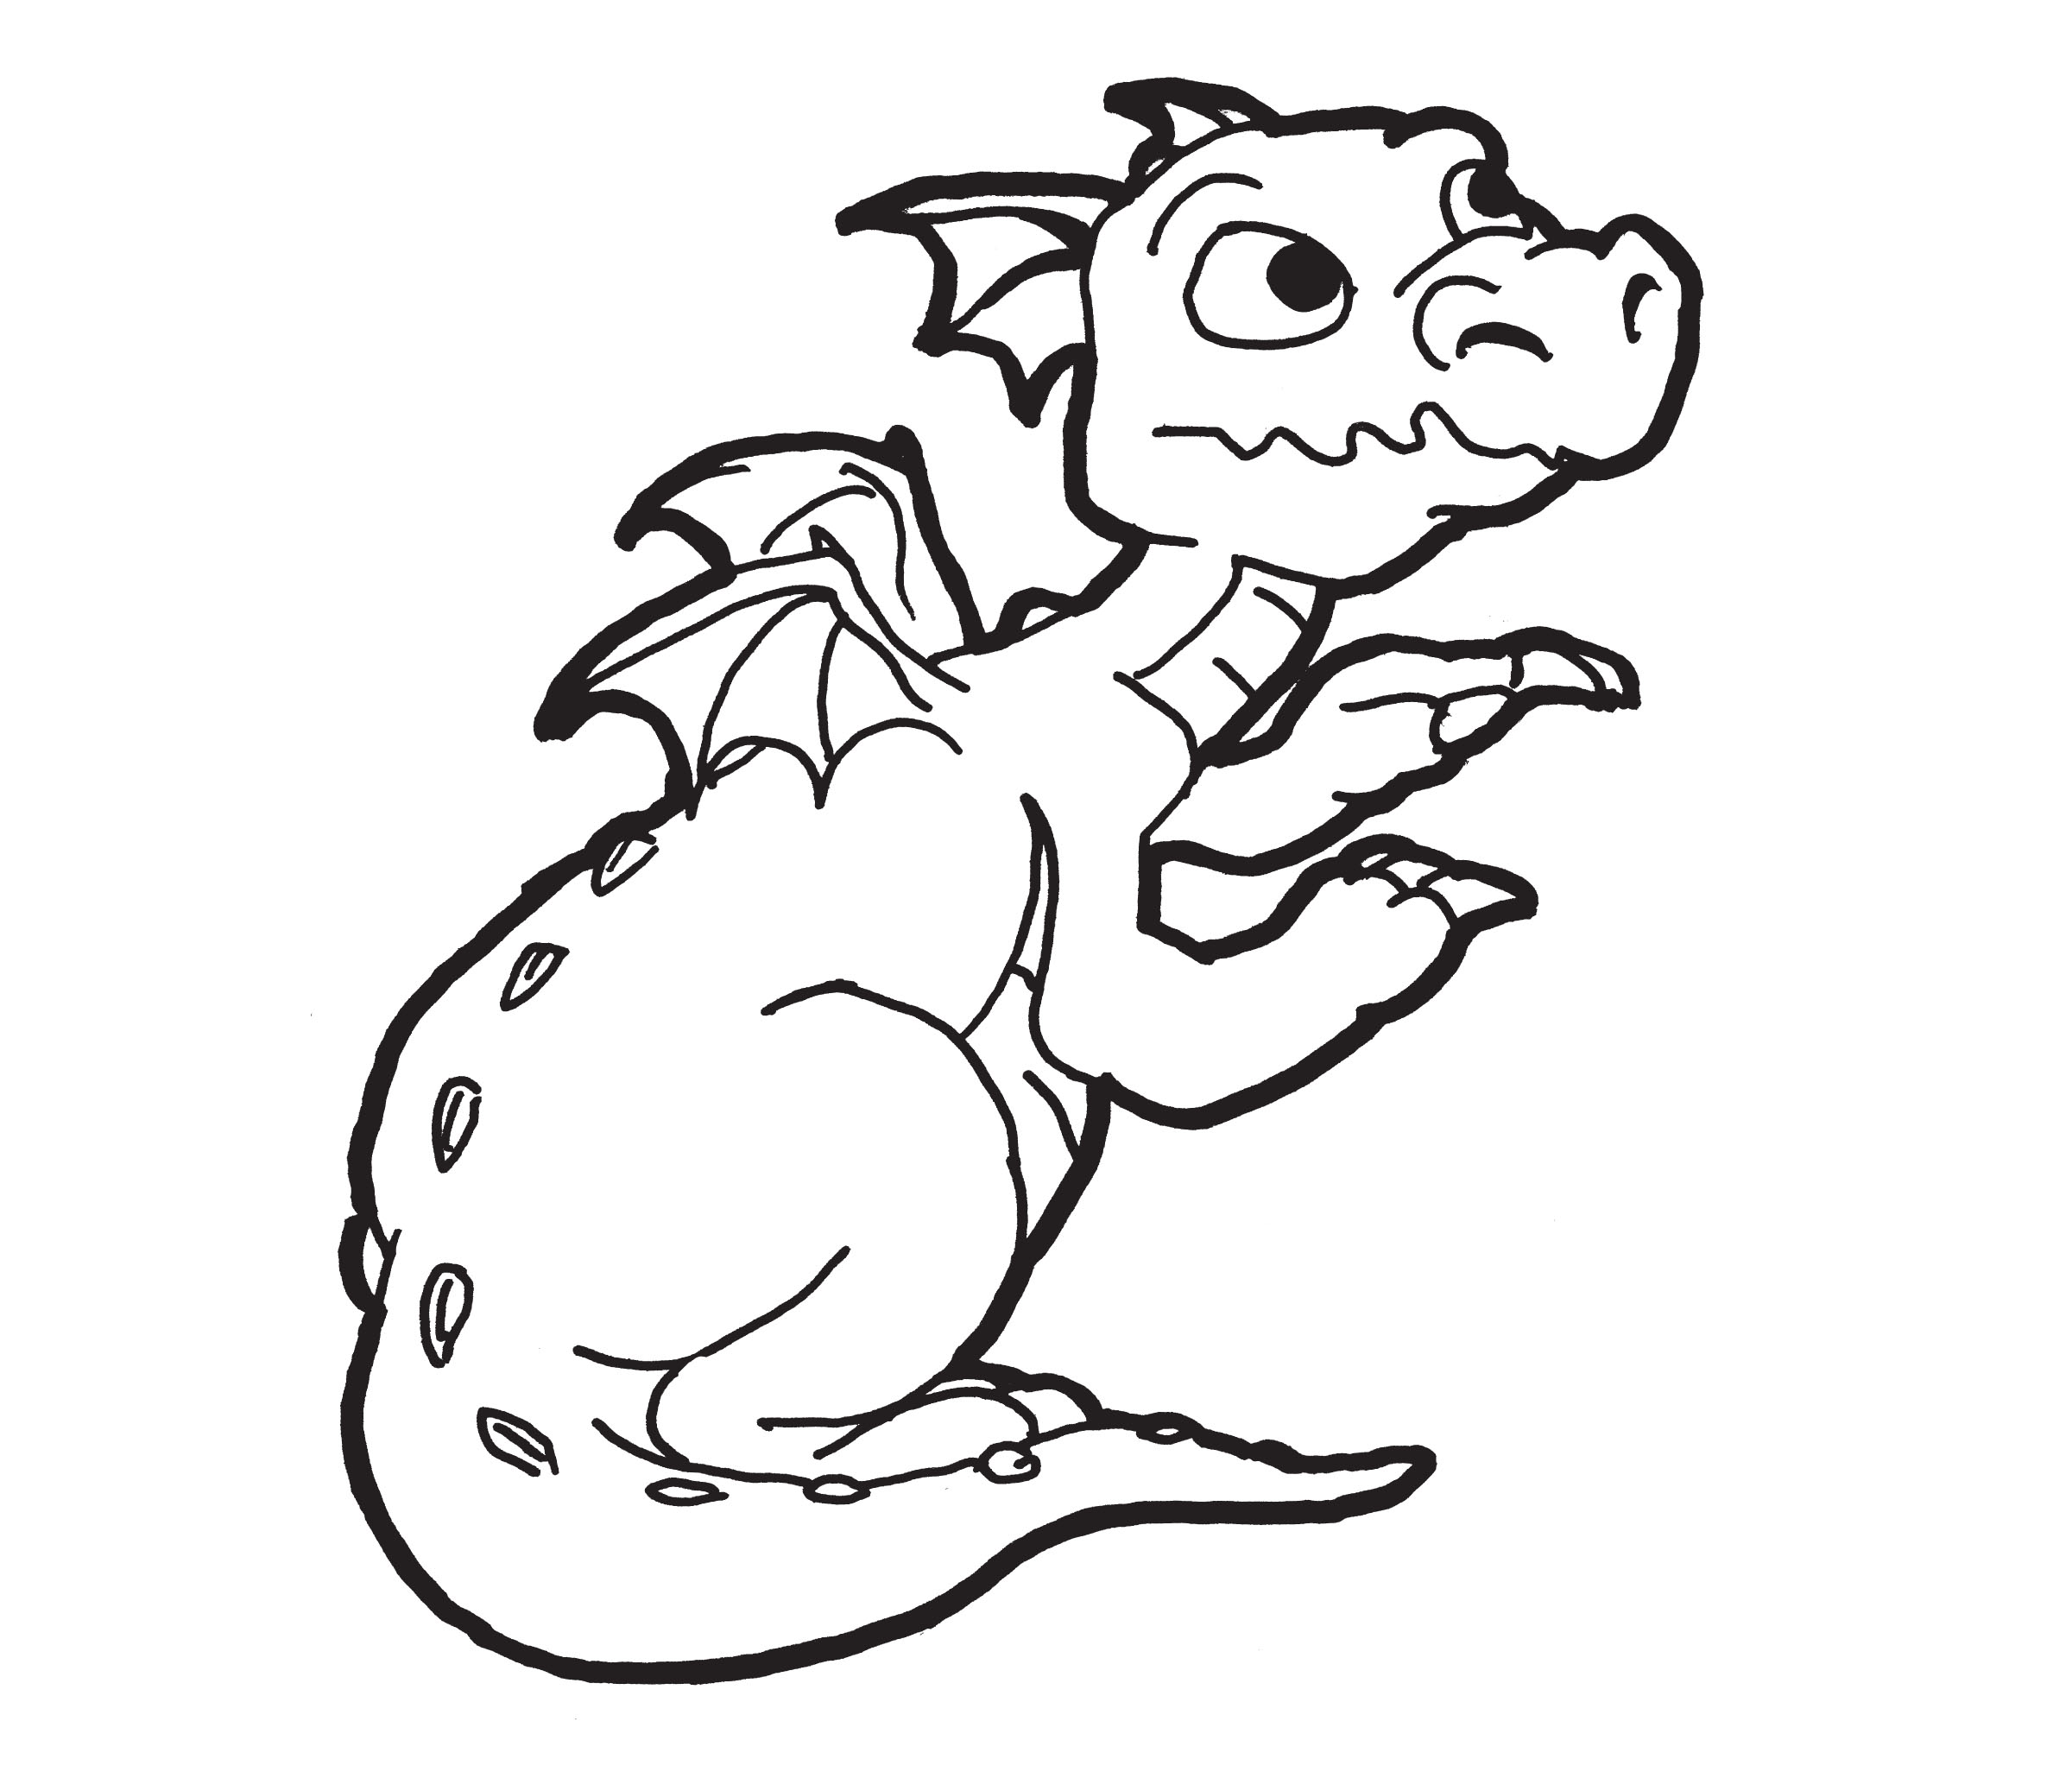 dragon head coloring sheet page - Chinese Dragon Head Coloring Pages